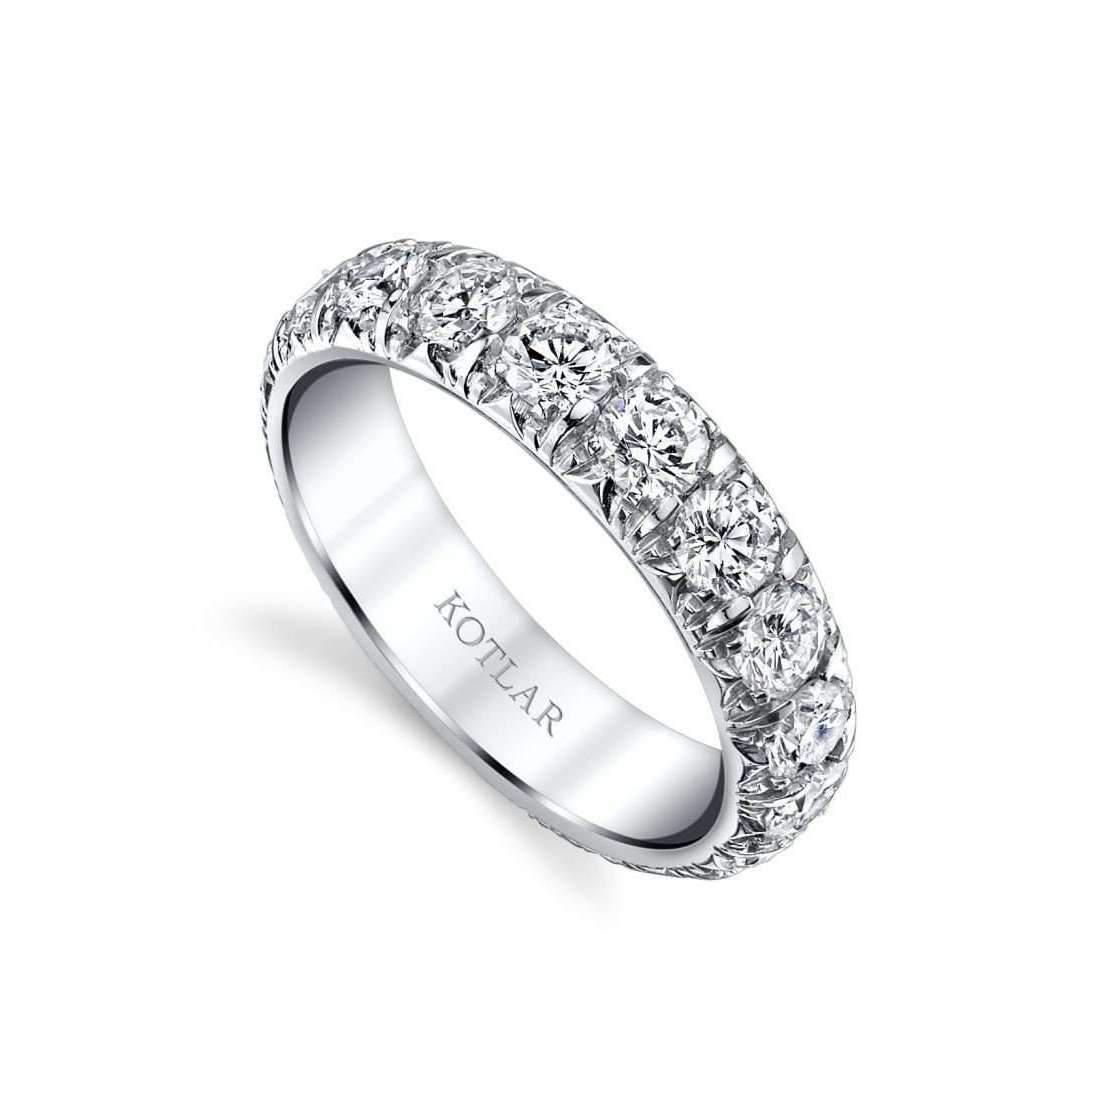 Harry Kotlar Leaf Artisan Pave Band - UK M - US 6 - EU 52 3/4 YK7XxJn3P